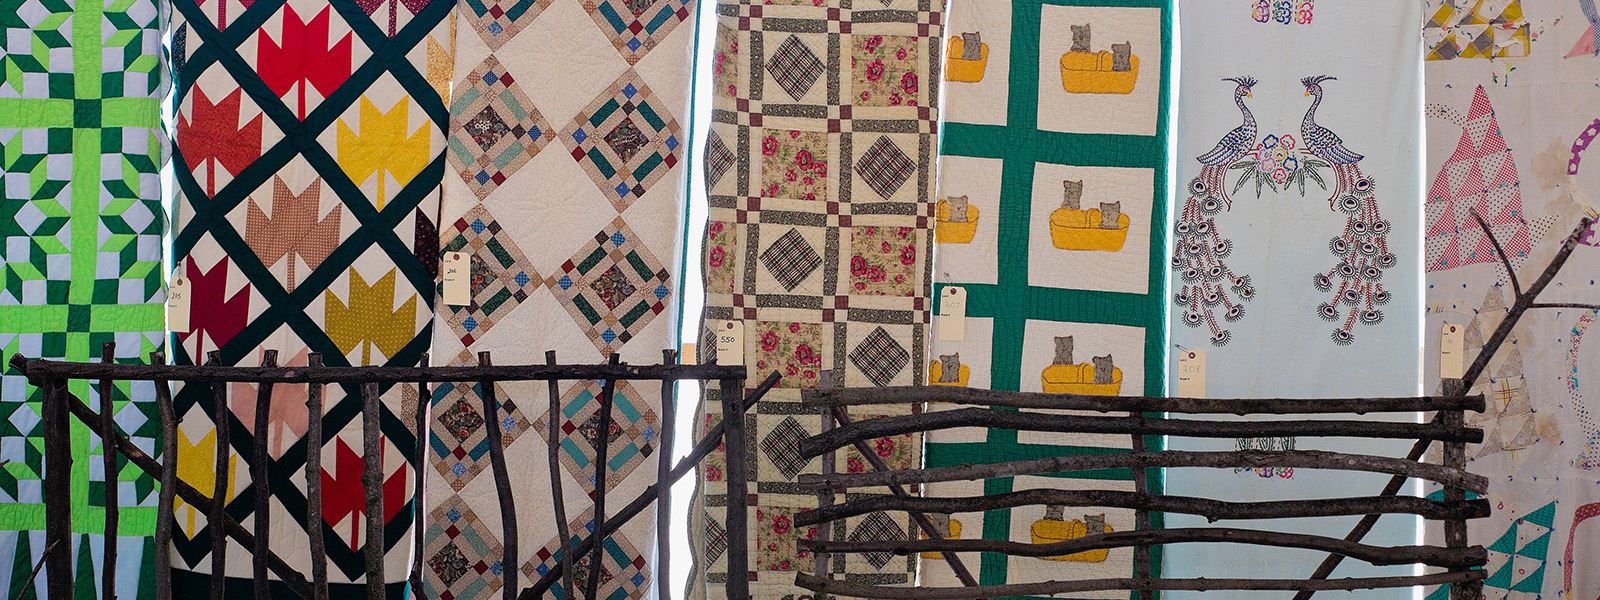 Quilts hanging at Amish auction, Minden